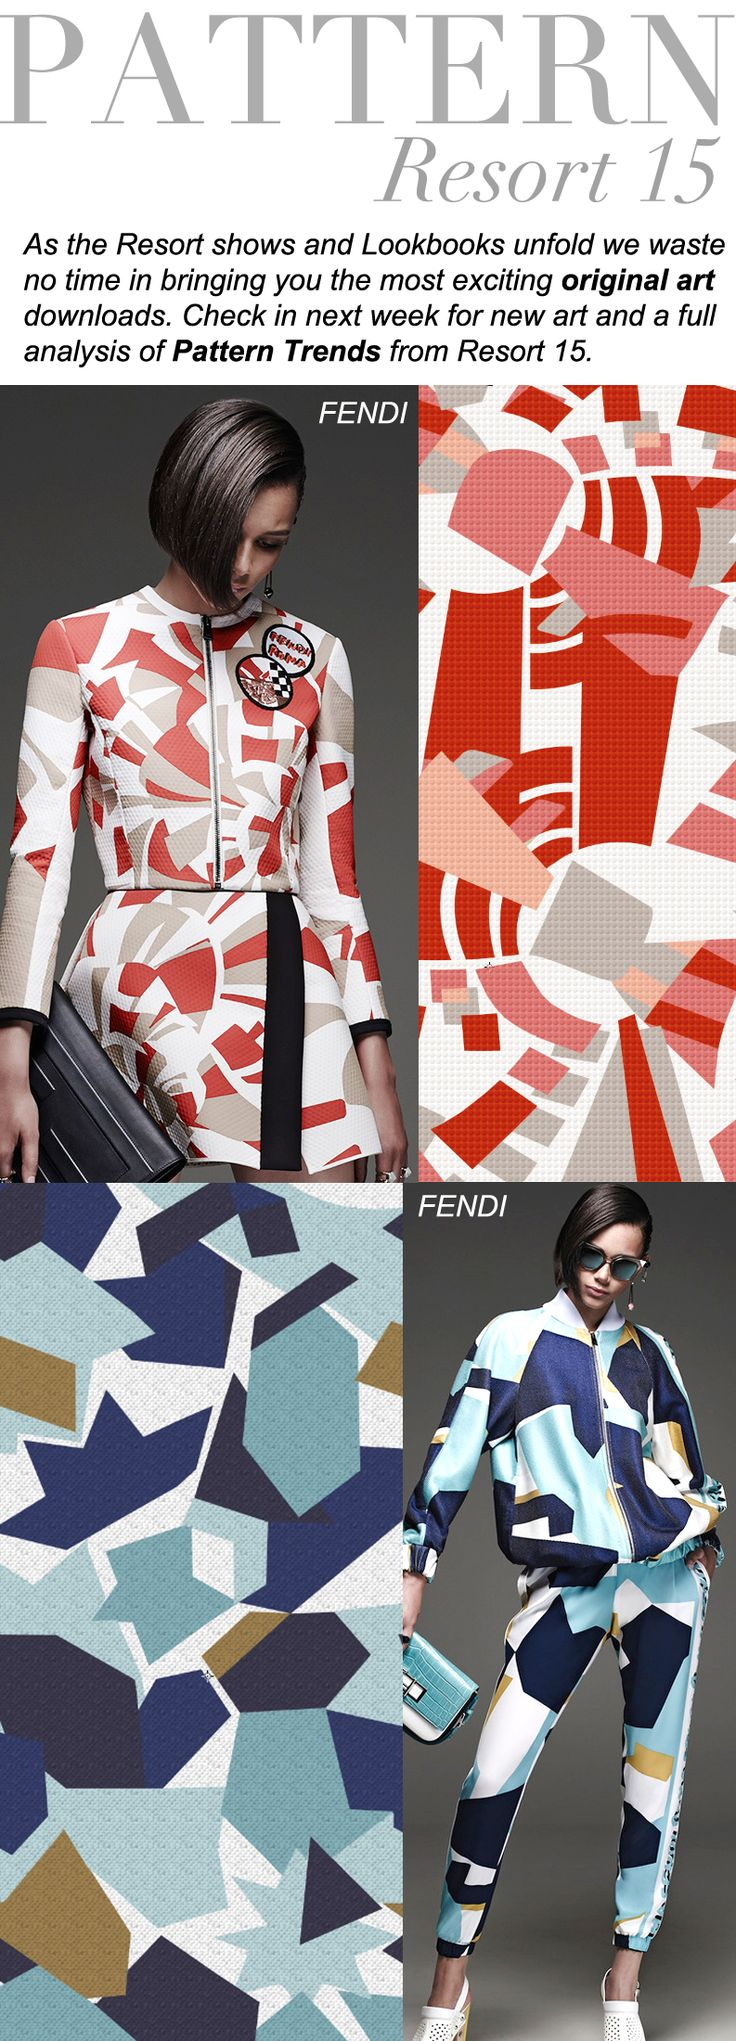 TREND COUNCIL RESORT 2015- PATTERN